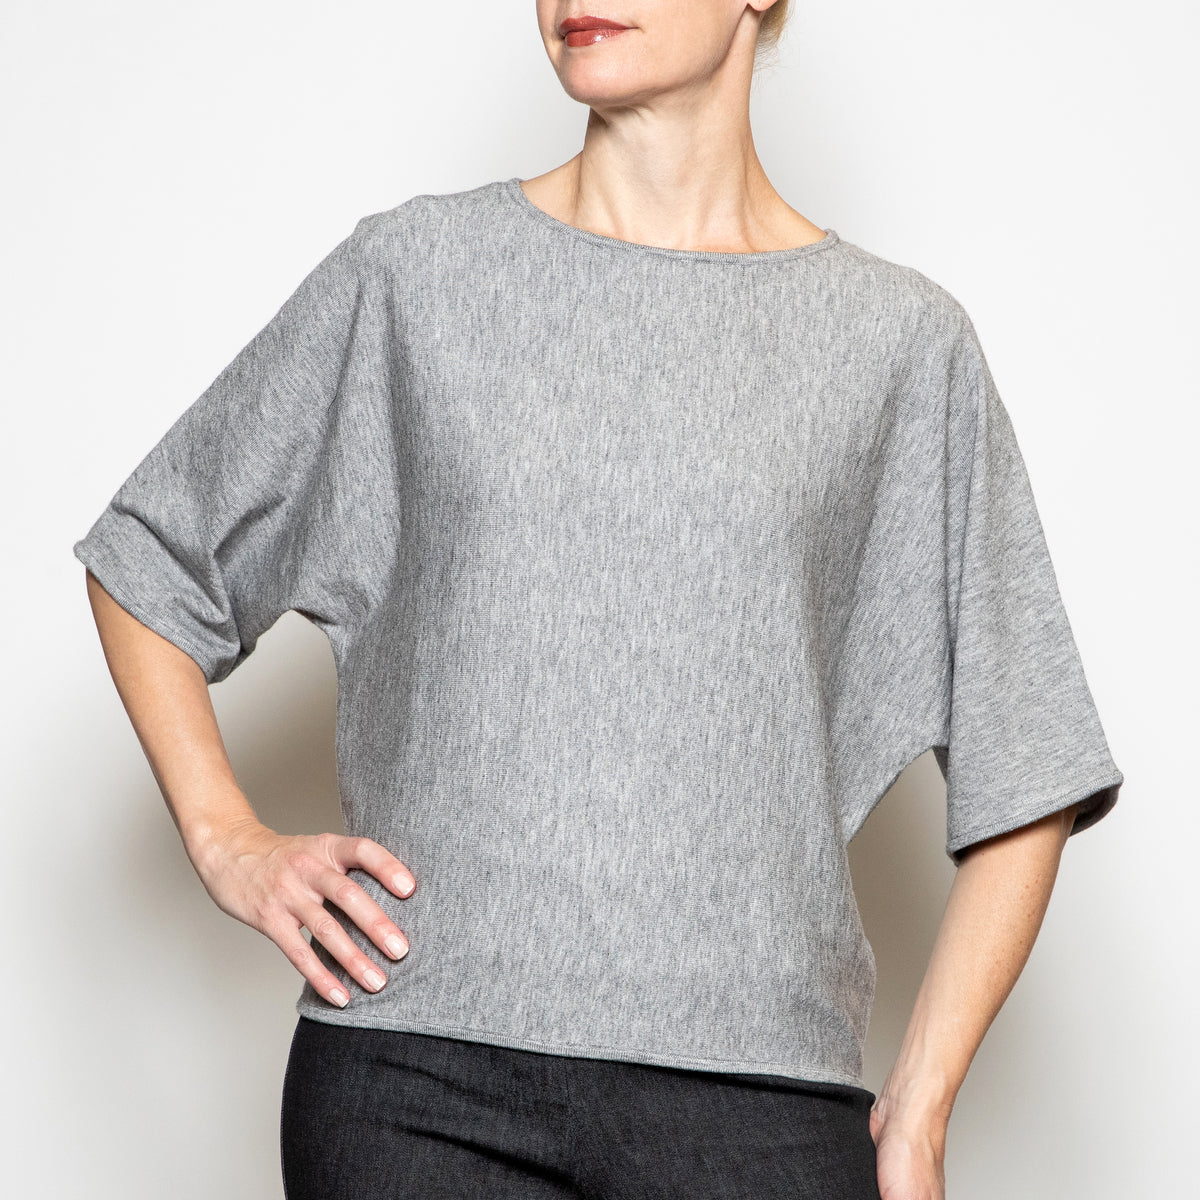 Apricot Easy Sweater in Light Grey